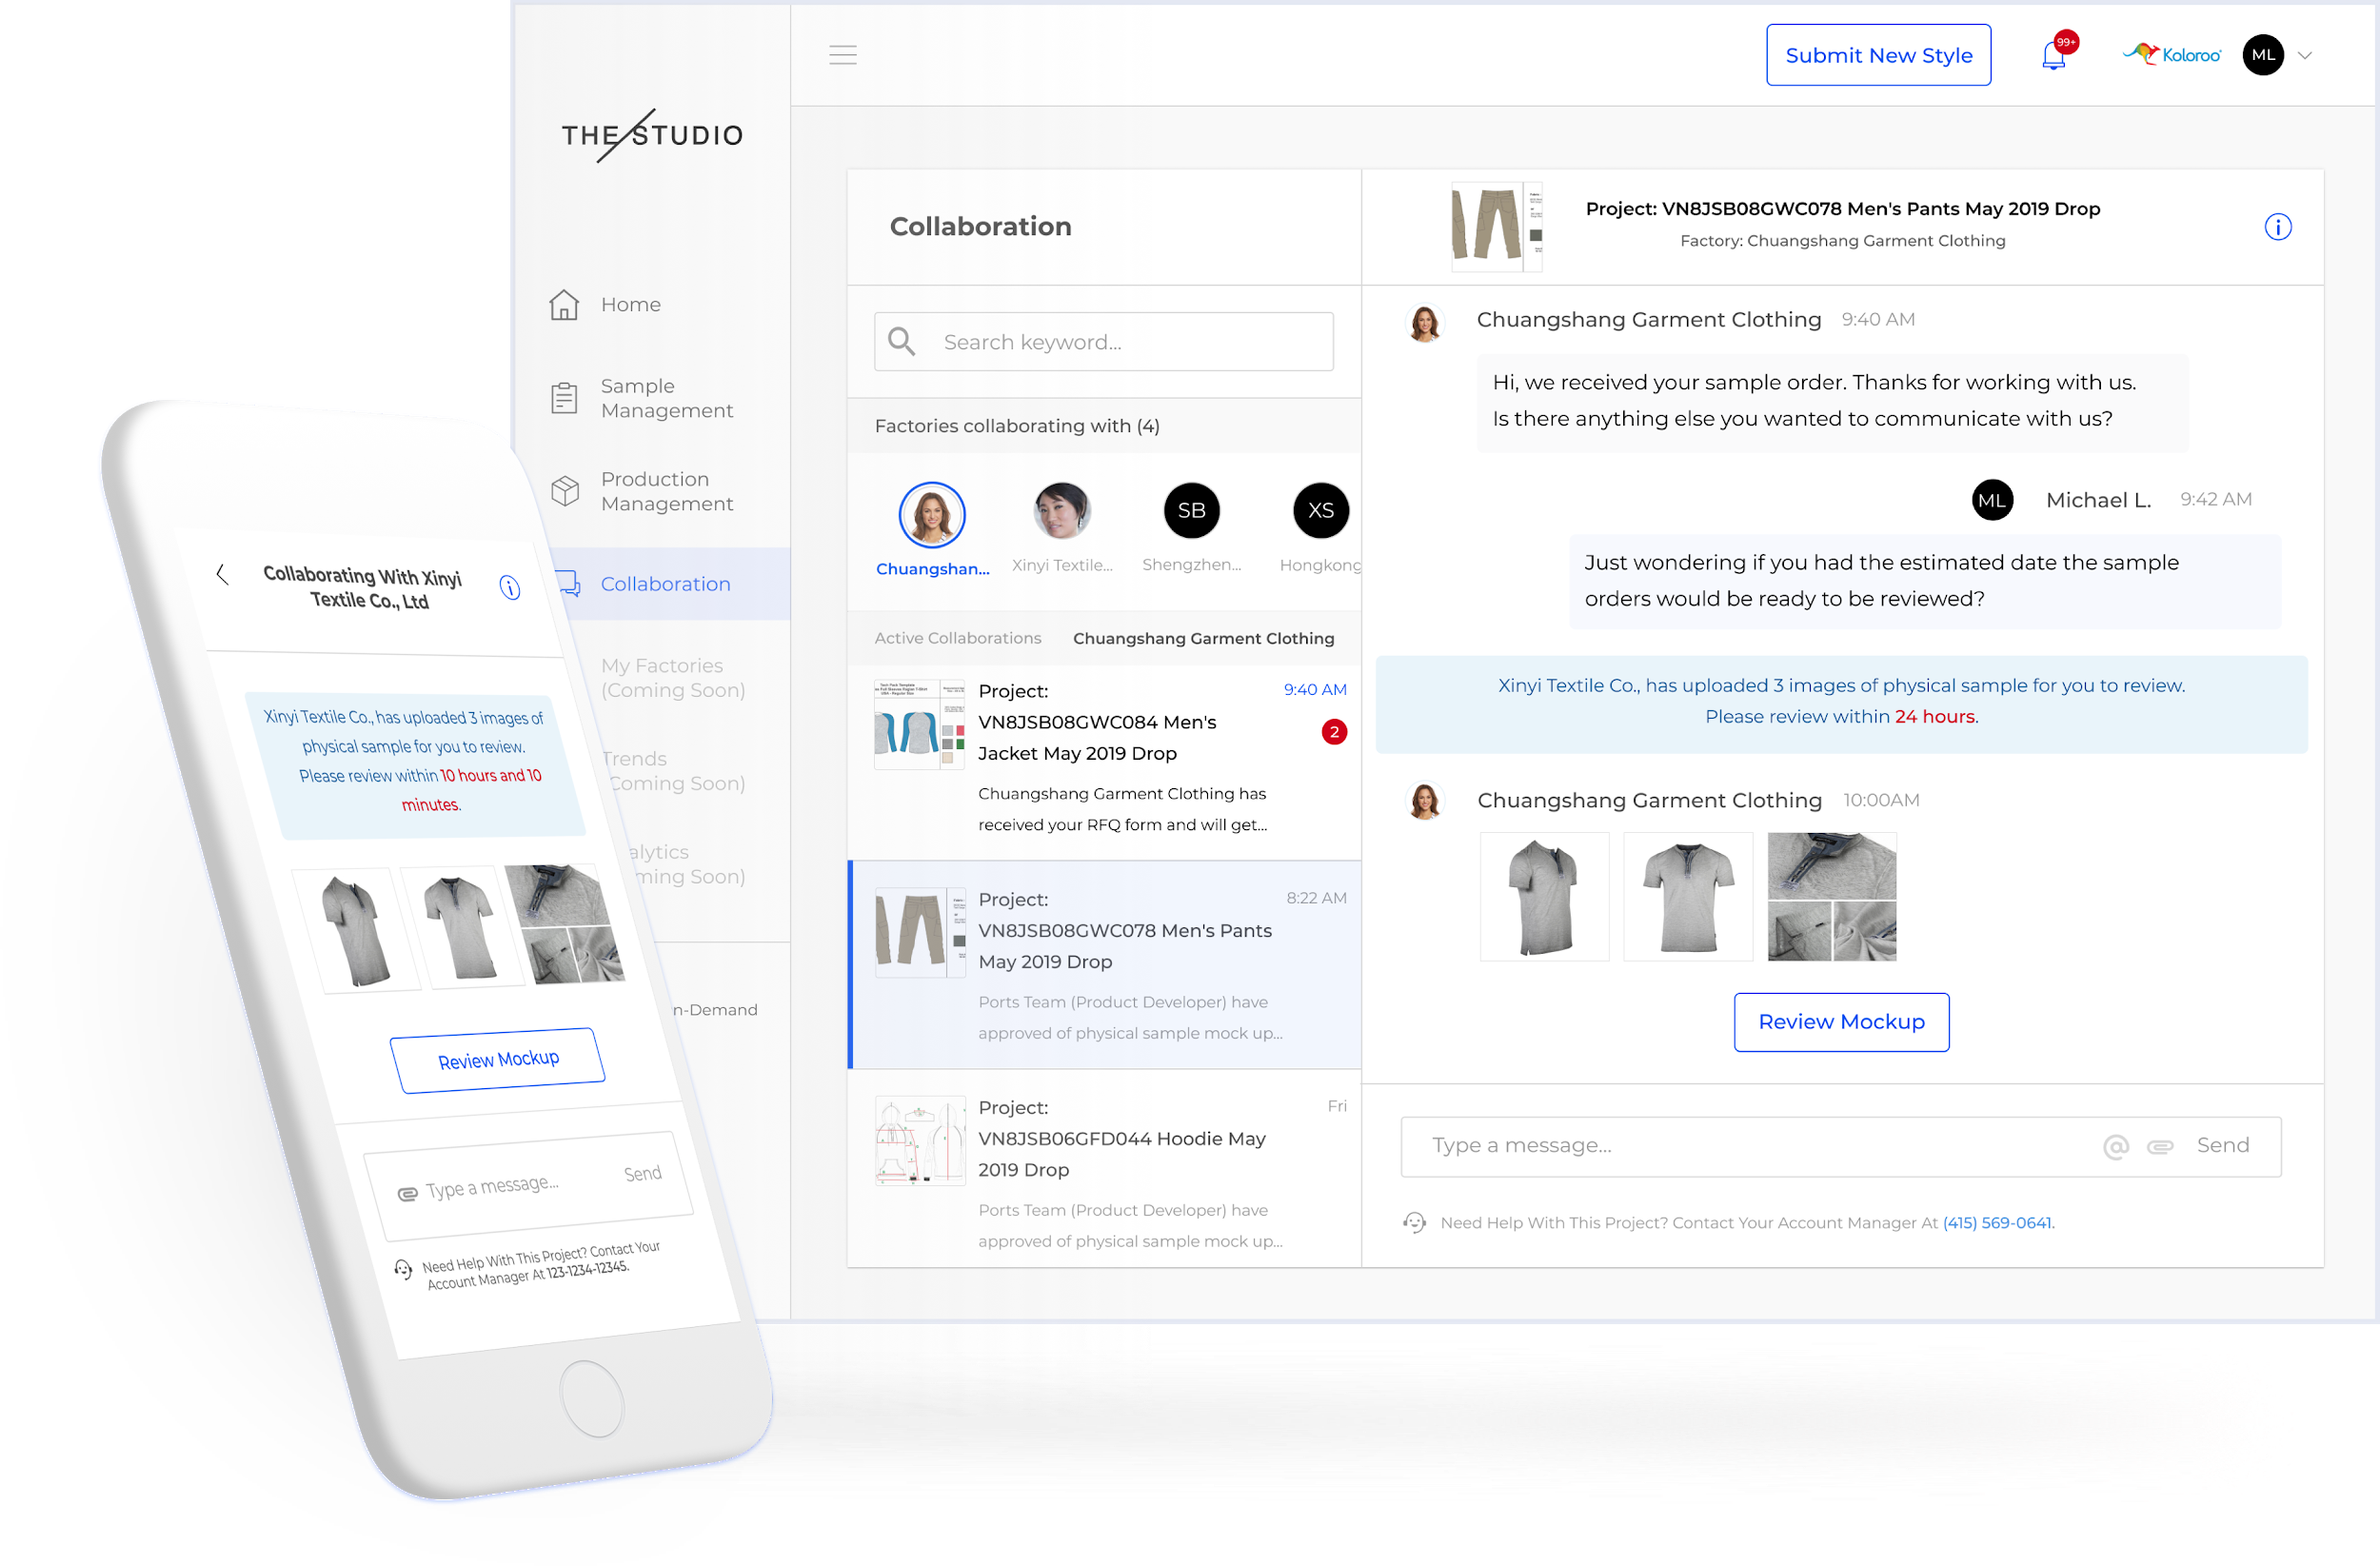 Easy Collaboration - Collaborate asynchronously with everyone on your value chain. Say goodbye to the endless emails, text messages, and spreadsheets that come with traditional factory management.